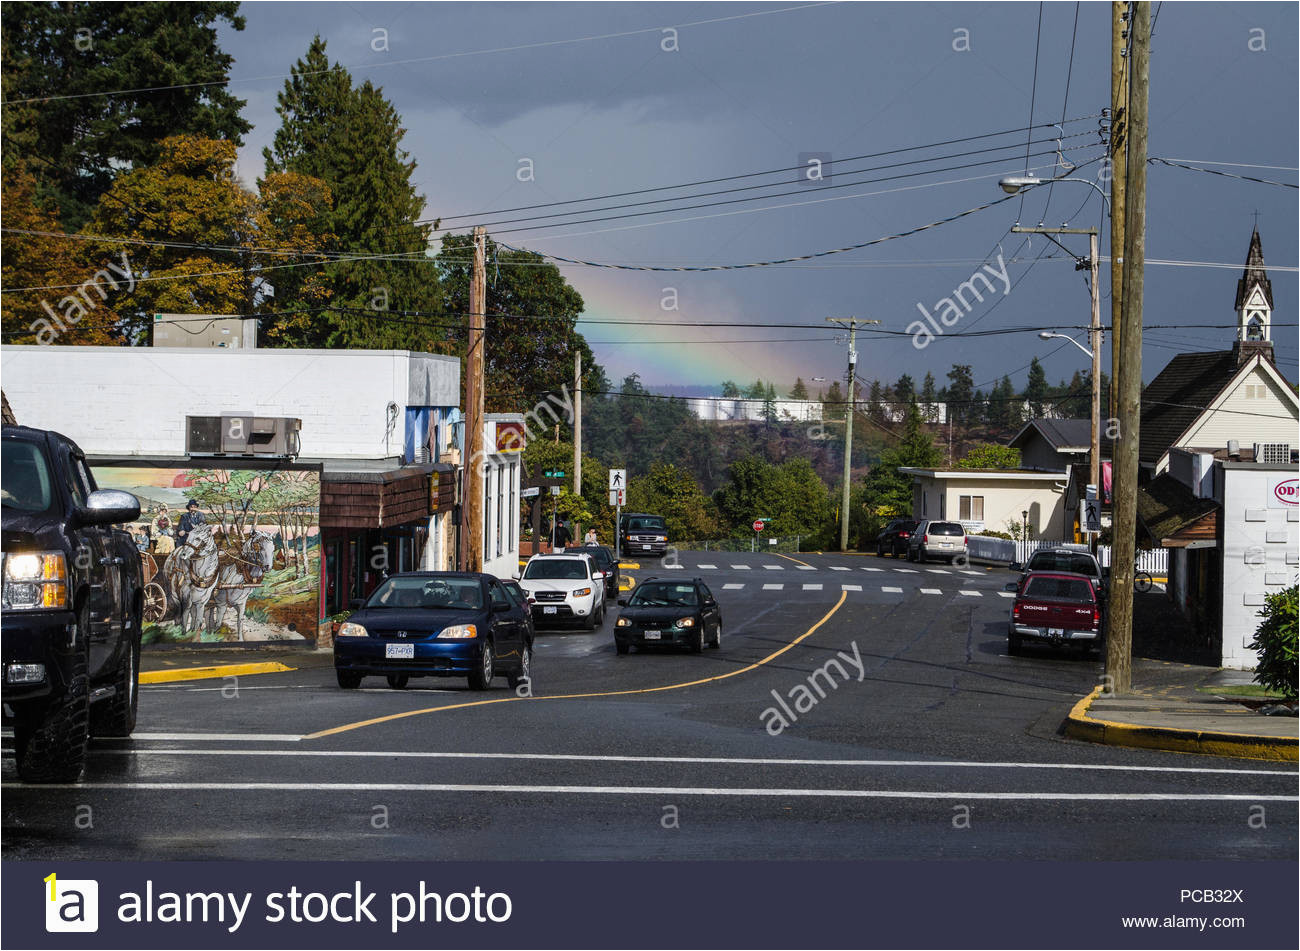 chemainus bc vancouver island canada the town has be e a tourist attraction with its painted murals and wall art PCB32X